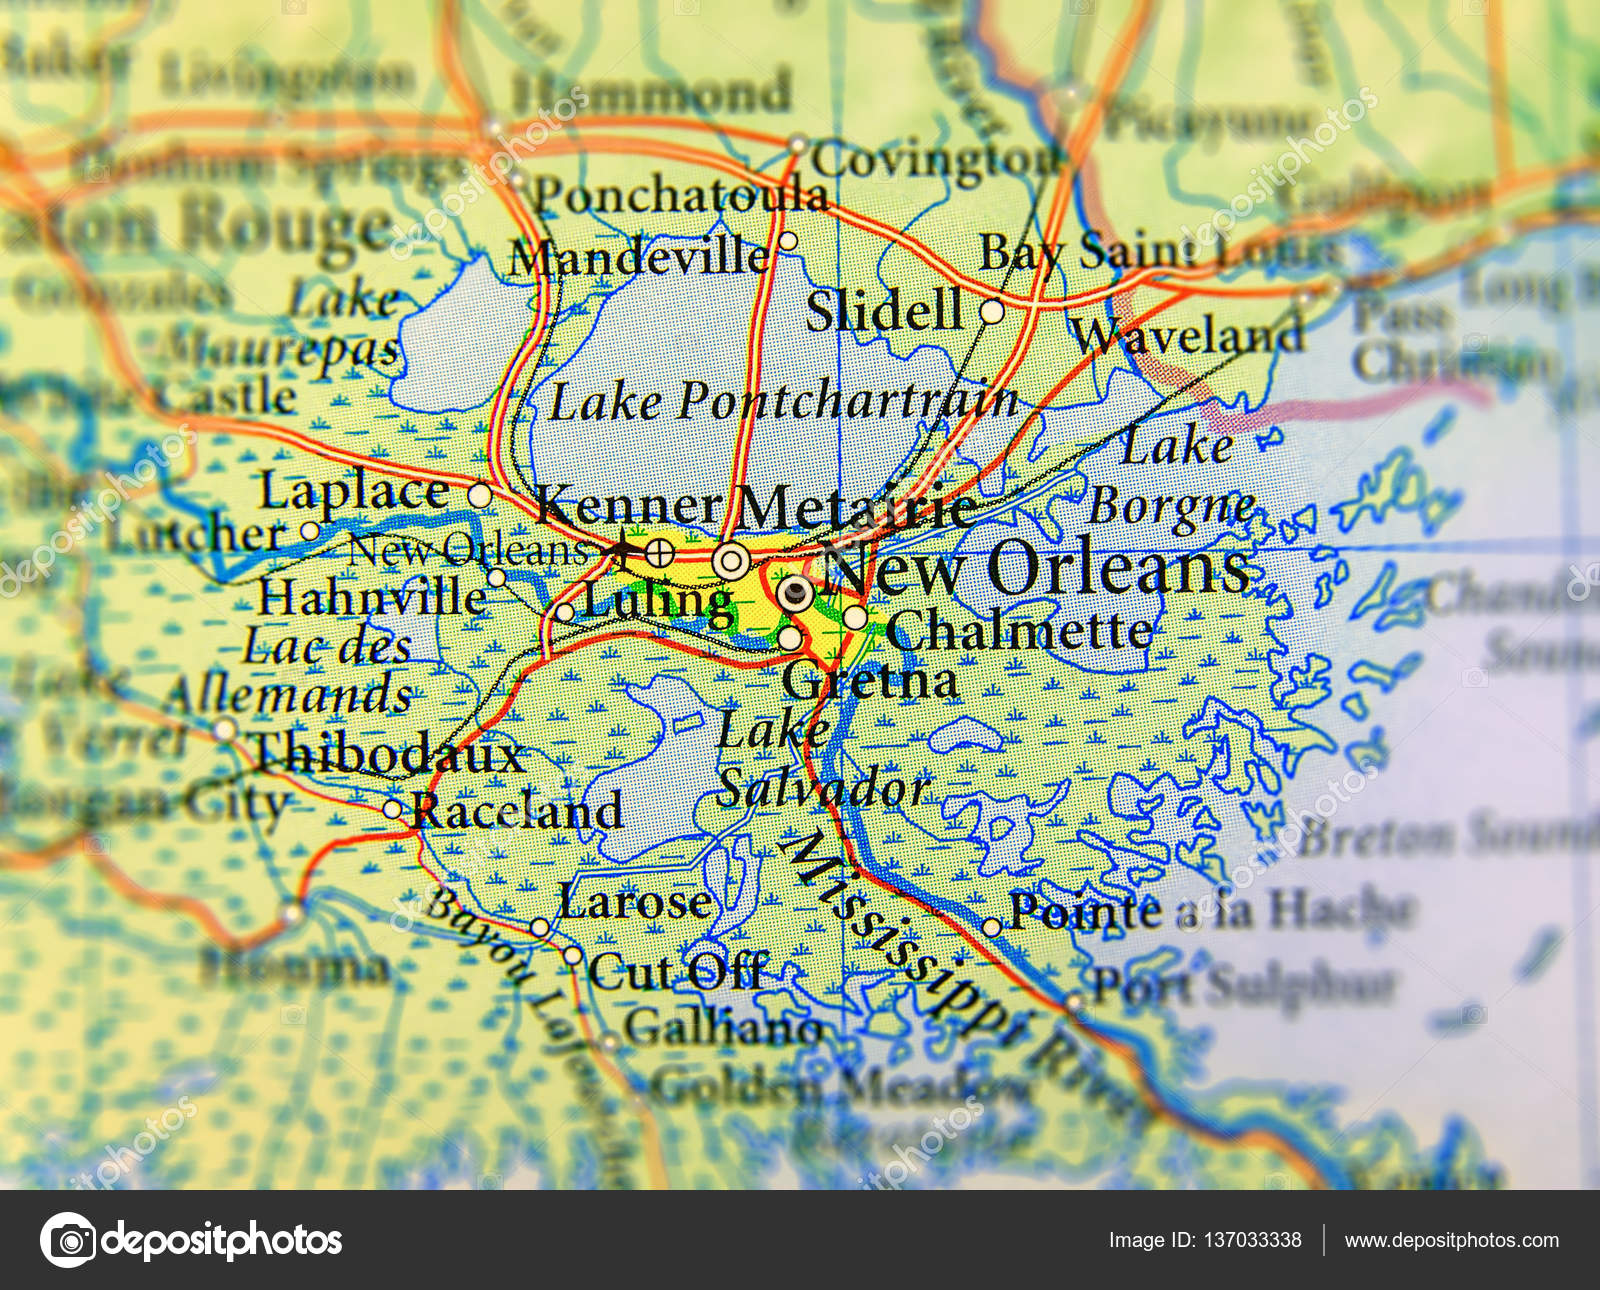 Geographic Map Of Us State Louisiana And New Orleans City Close - New-orleans-us-map